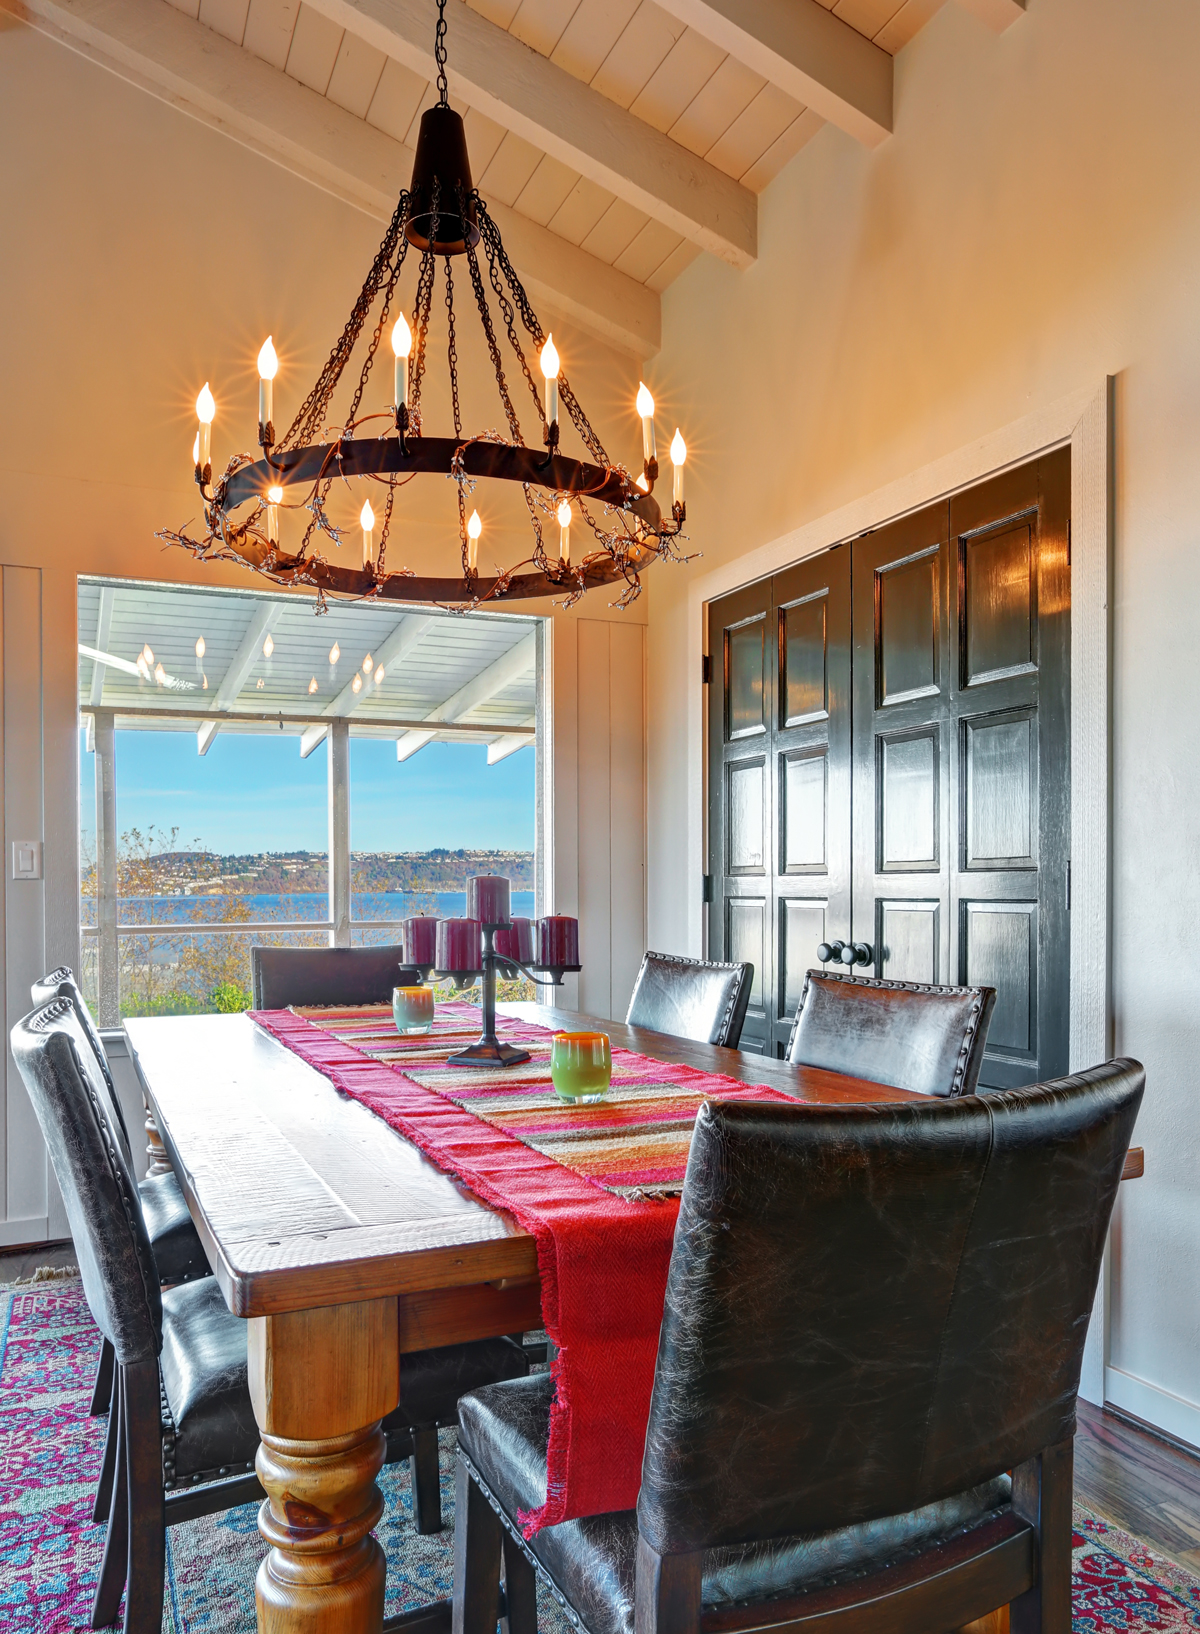 Let your dining room light reflect your personal style